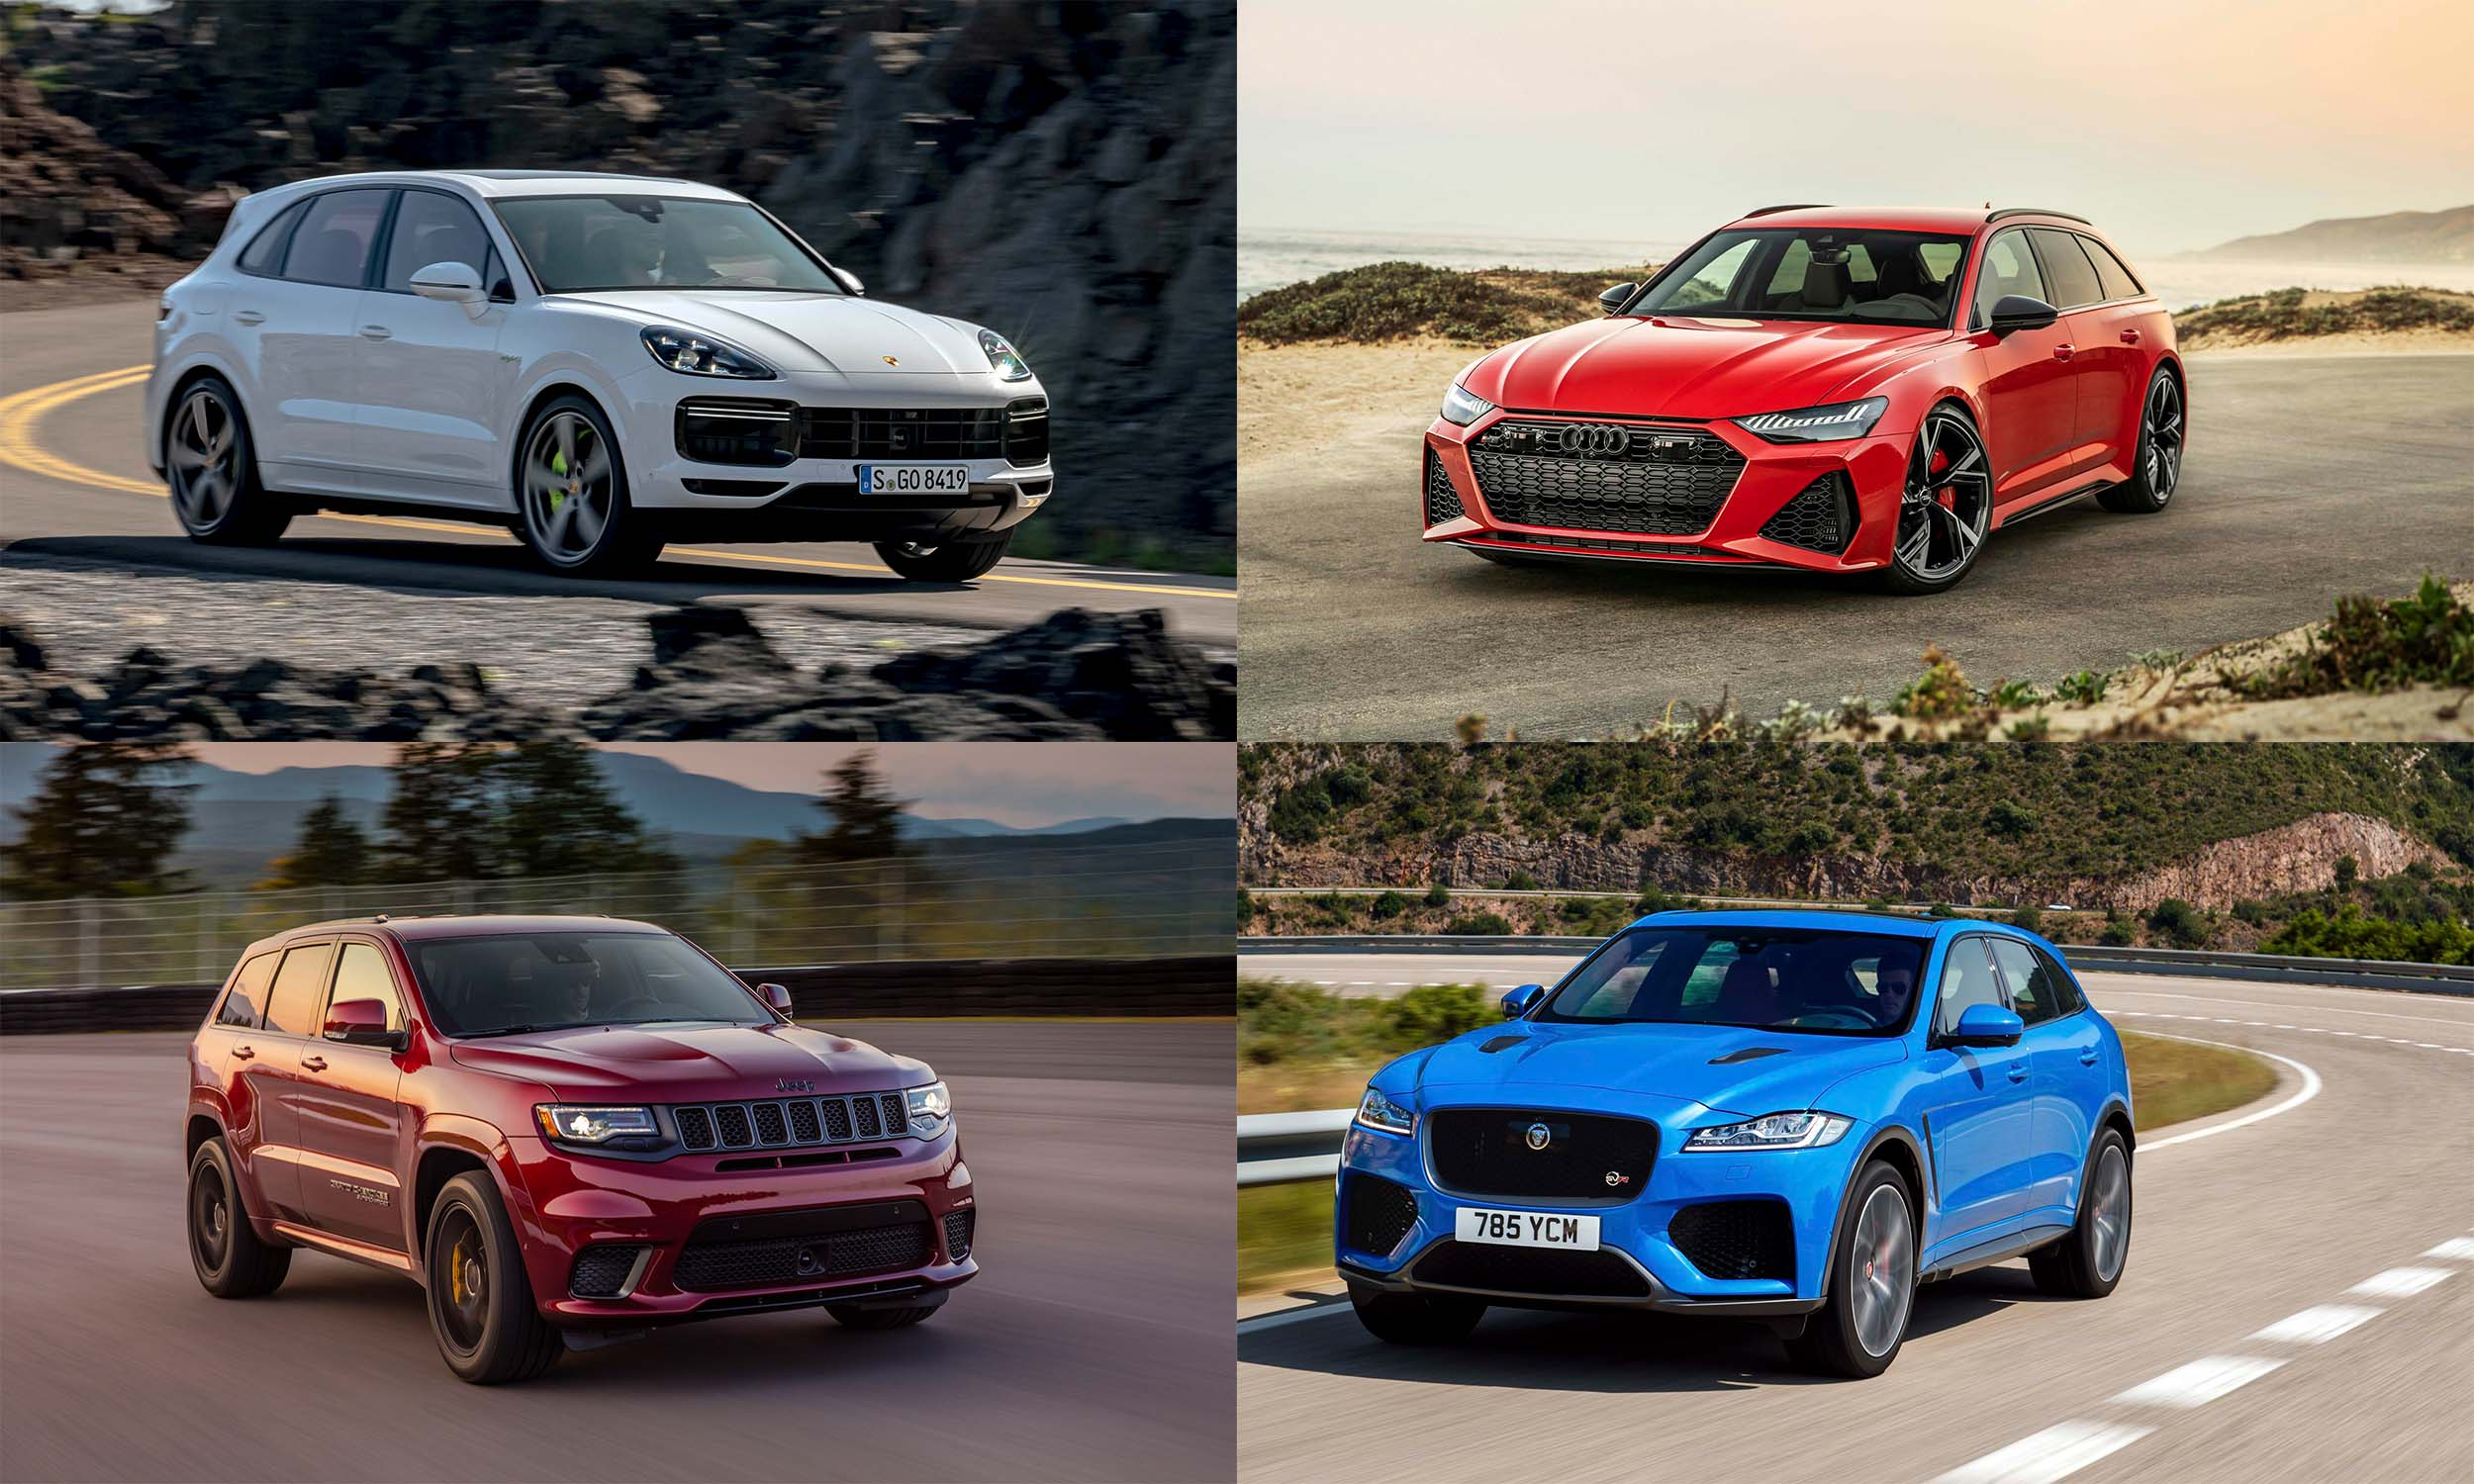 © Porsche Cars North America, © FCA US, © Audi AG, © Jaguar Land Rover